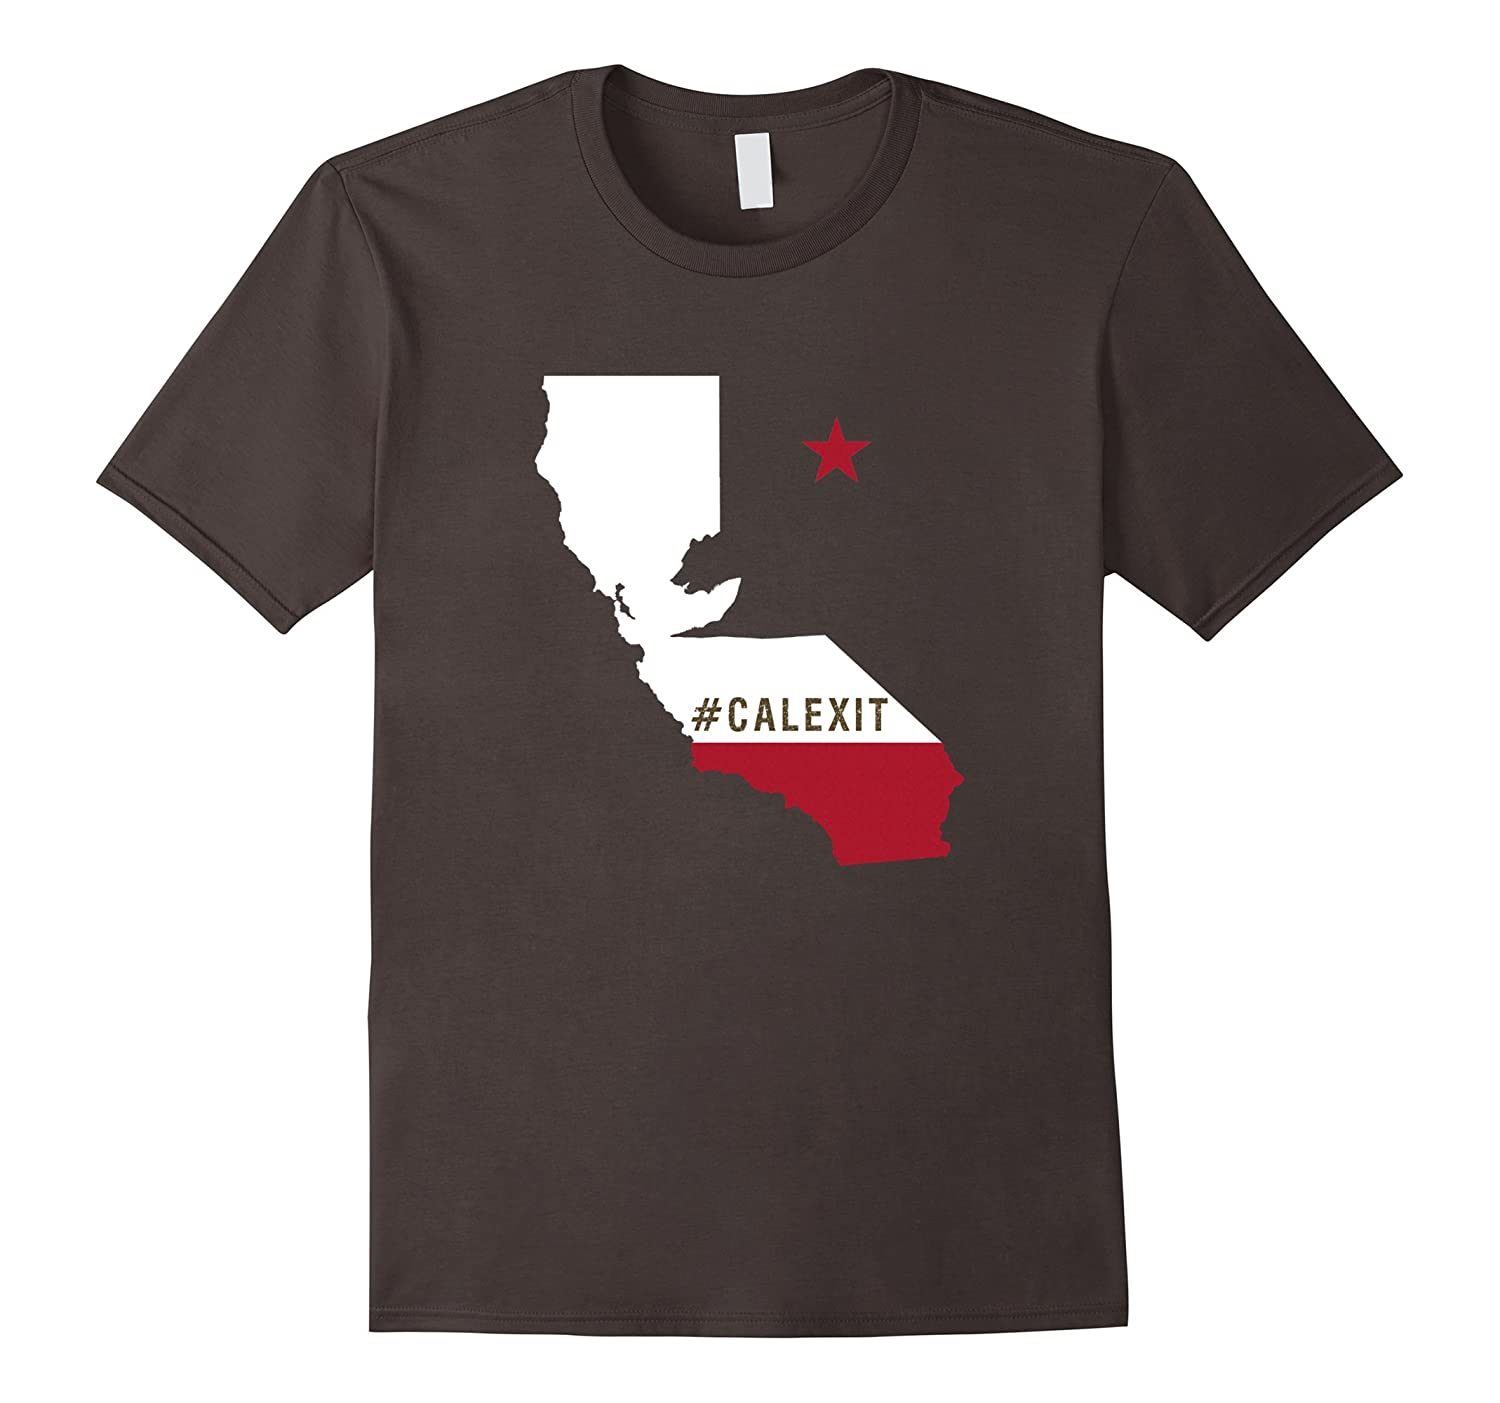 #CalExit Hashtag California Exit Secession USA Protest Tee-BN